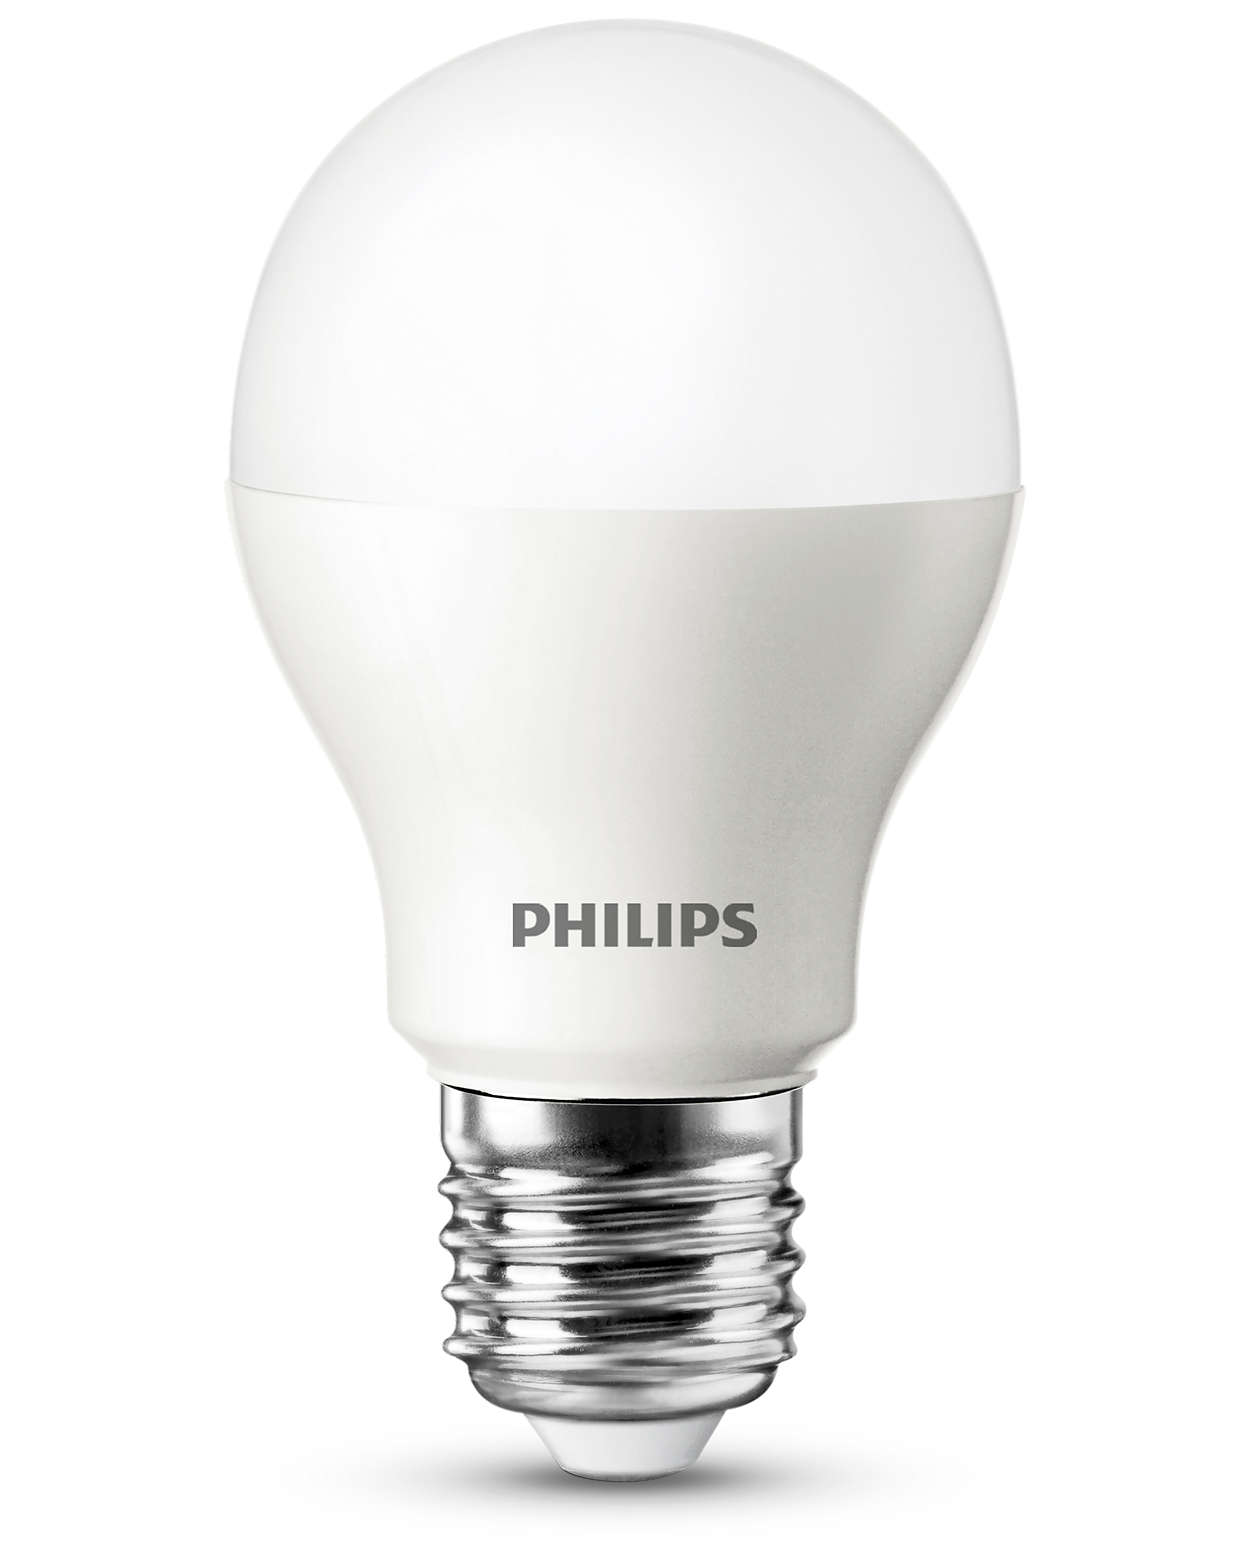 Led bulb 8718291763918 philips download image parisarafo Image collections